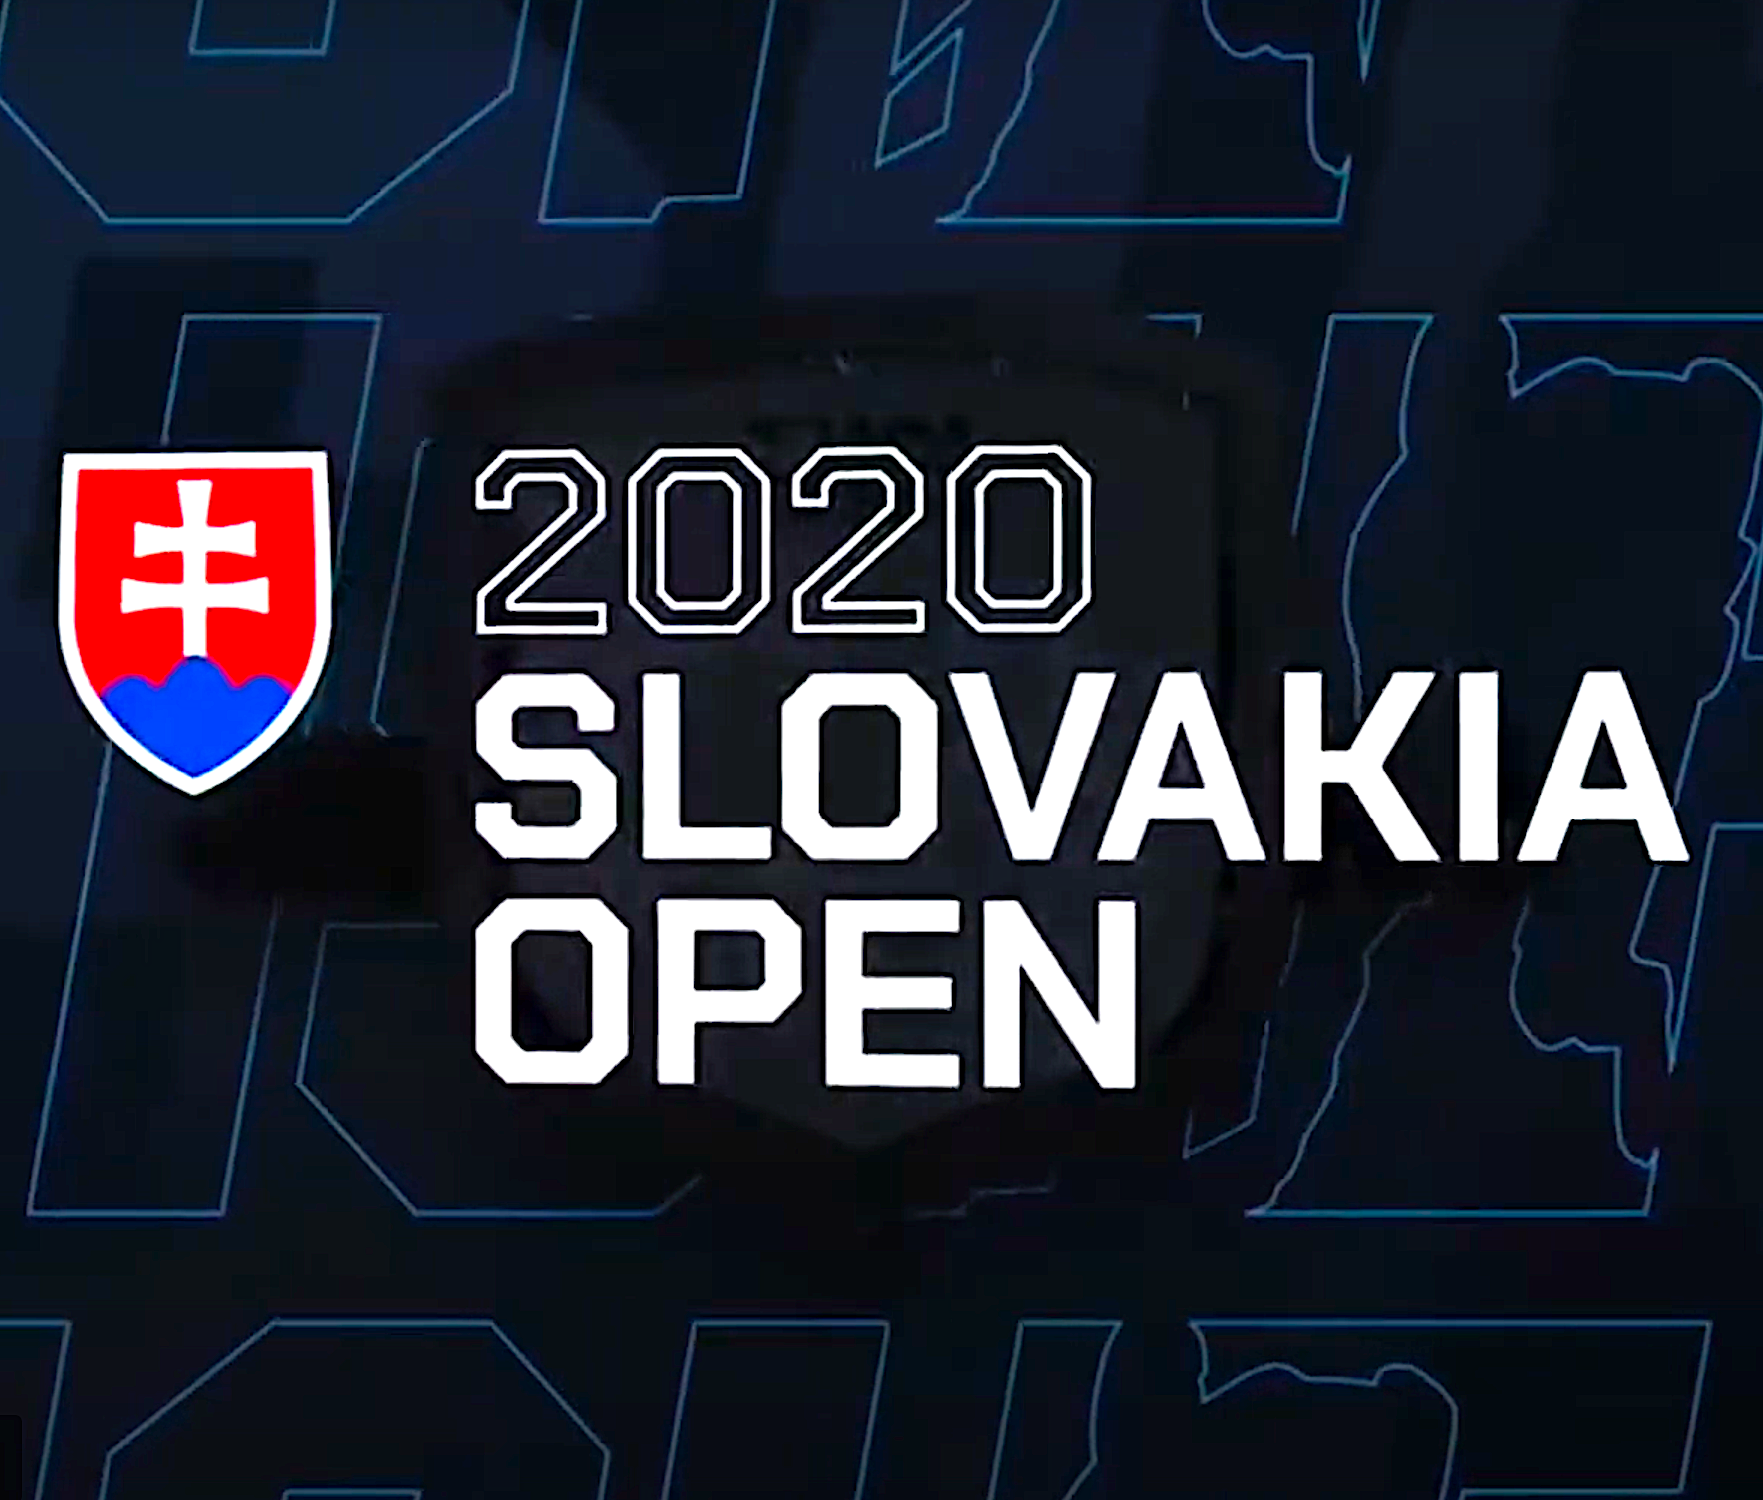 LIST OF PARTICIPANTS IN THE SLOVAKIA CHALLENGE